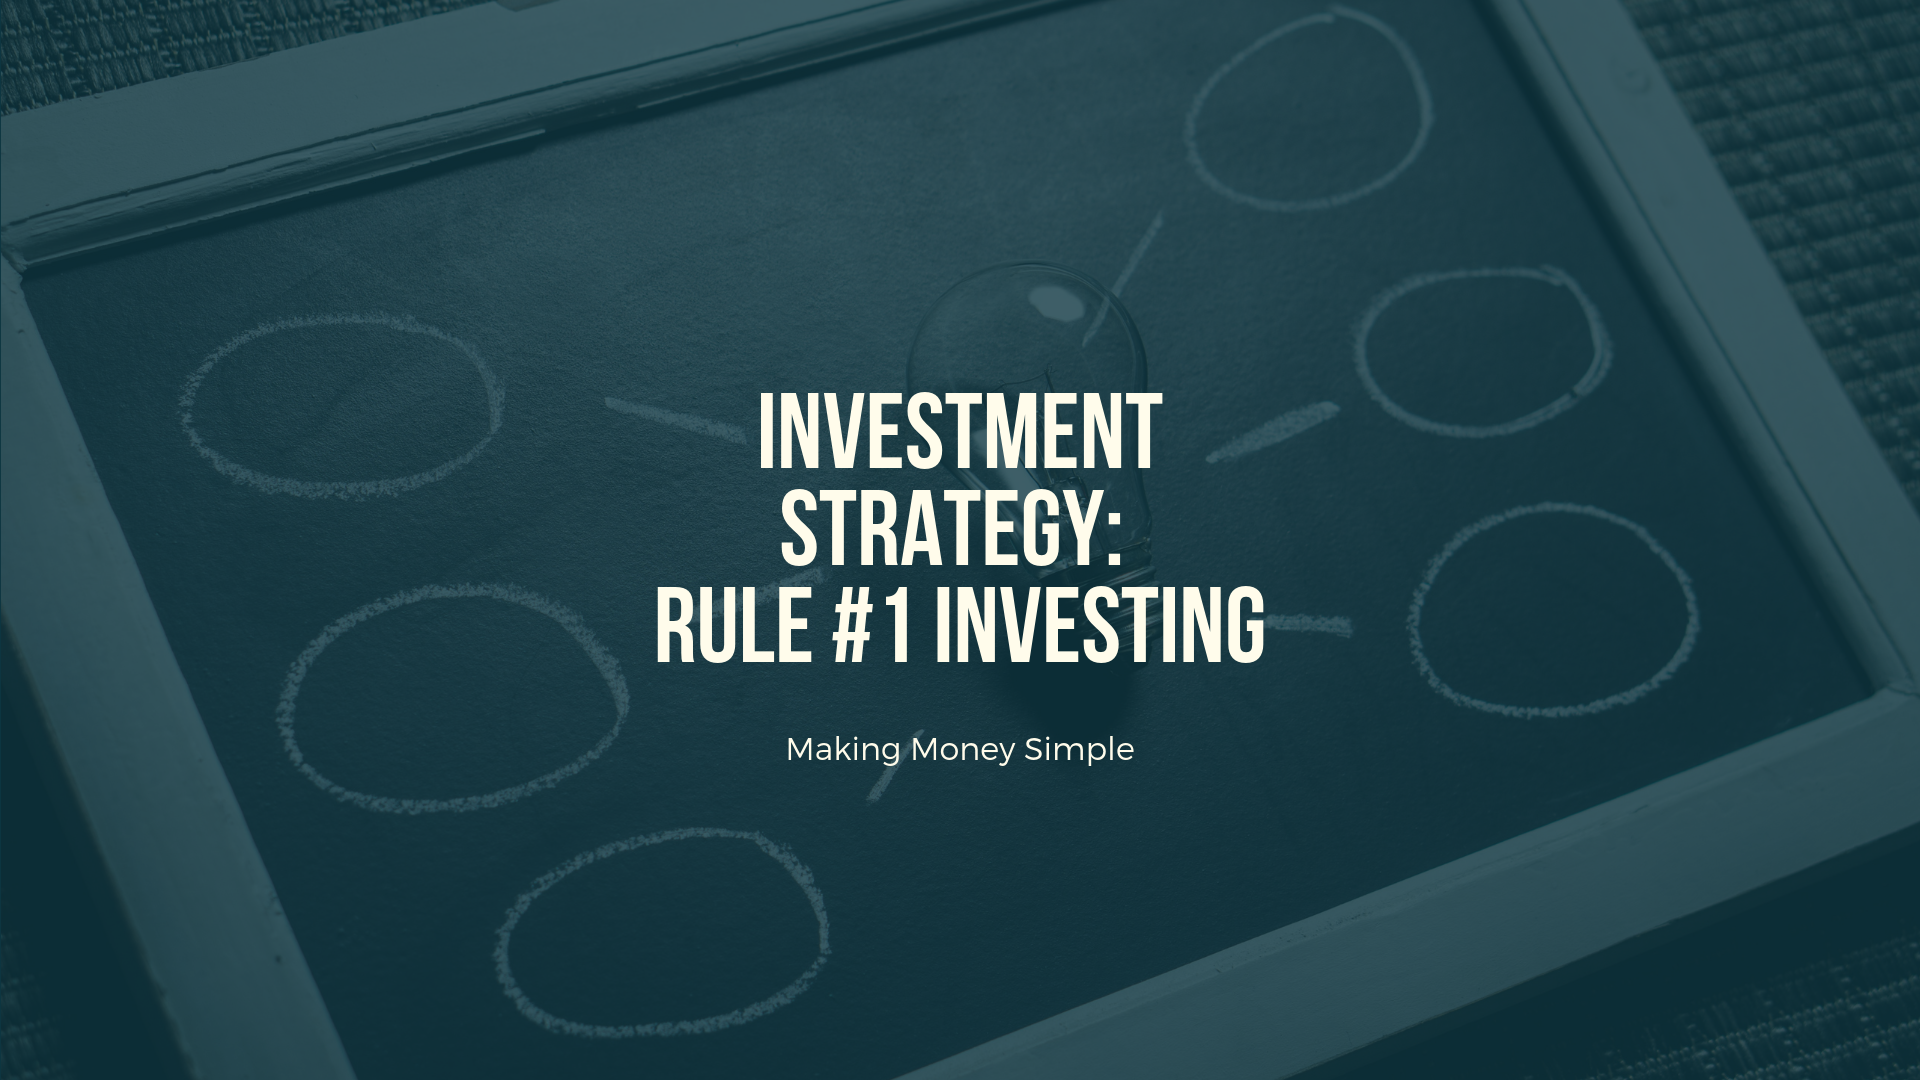 Investment Strategy: Rule #1 Investing